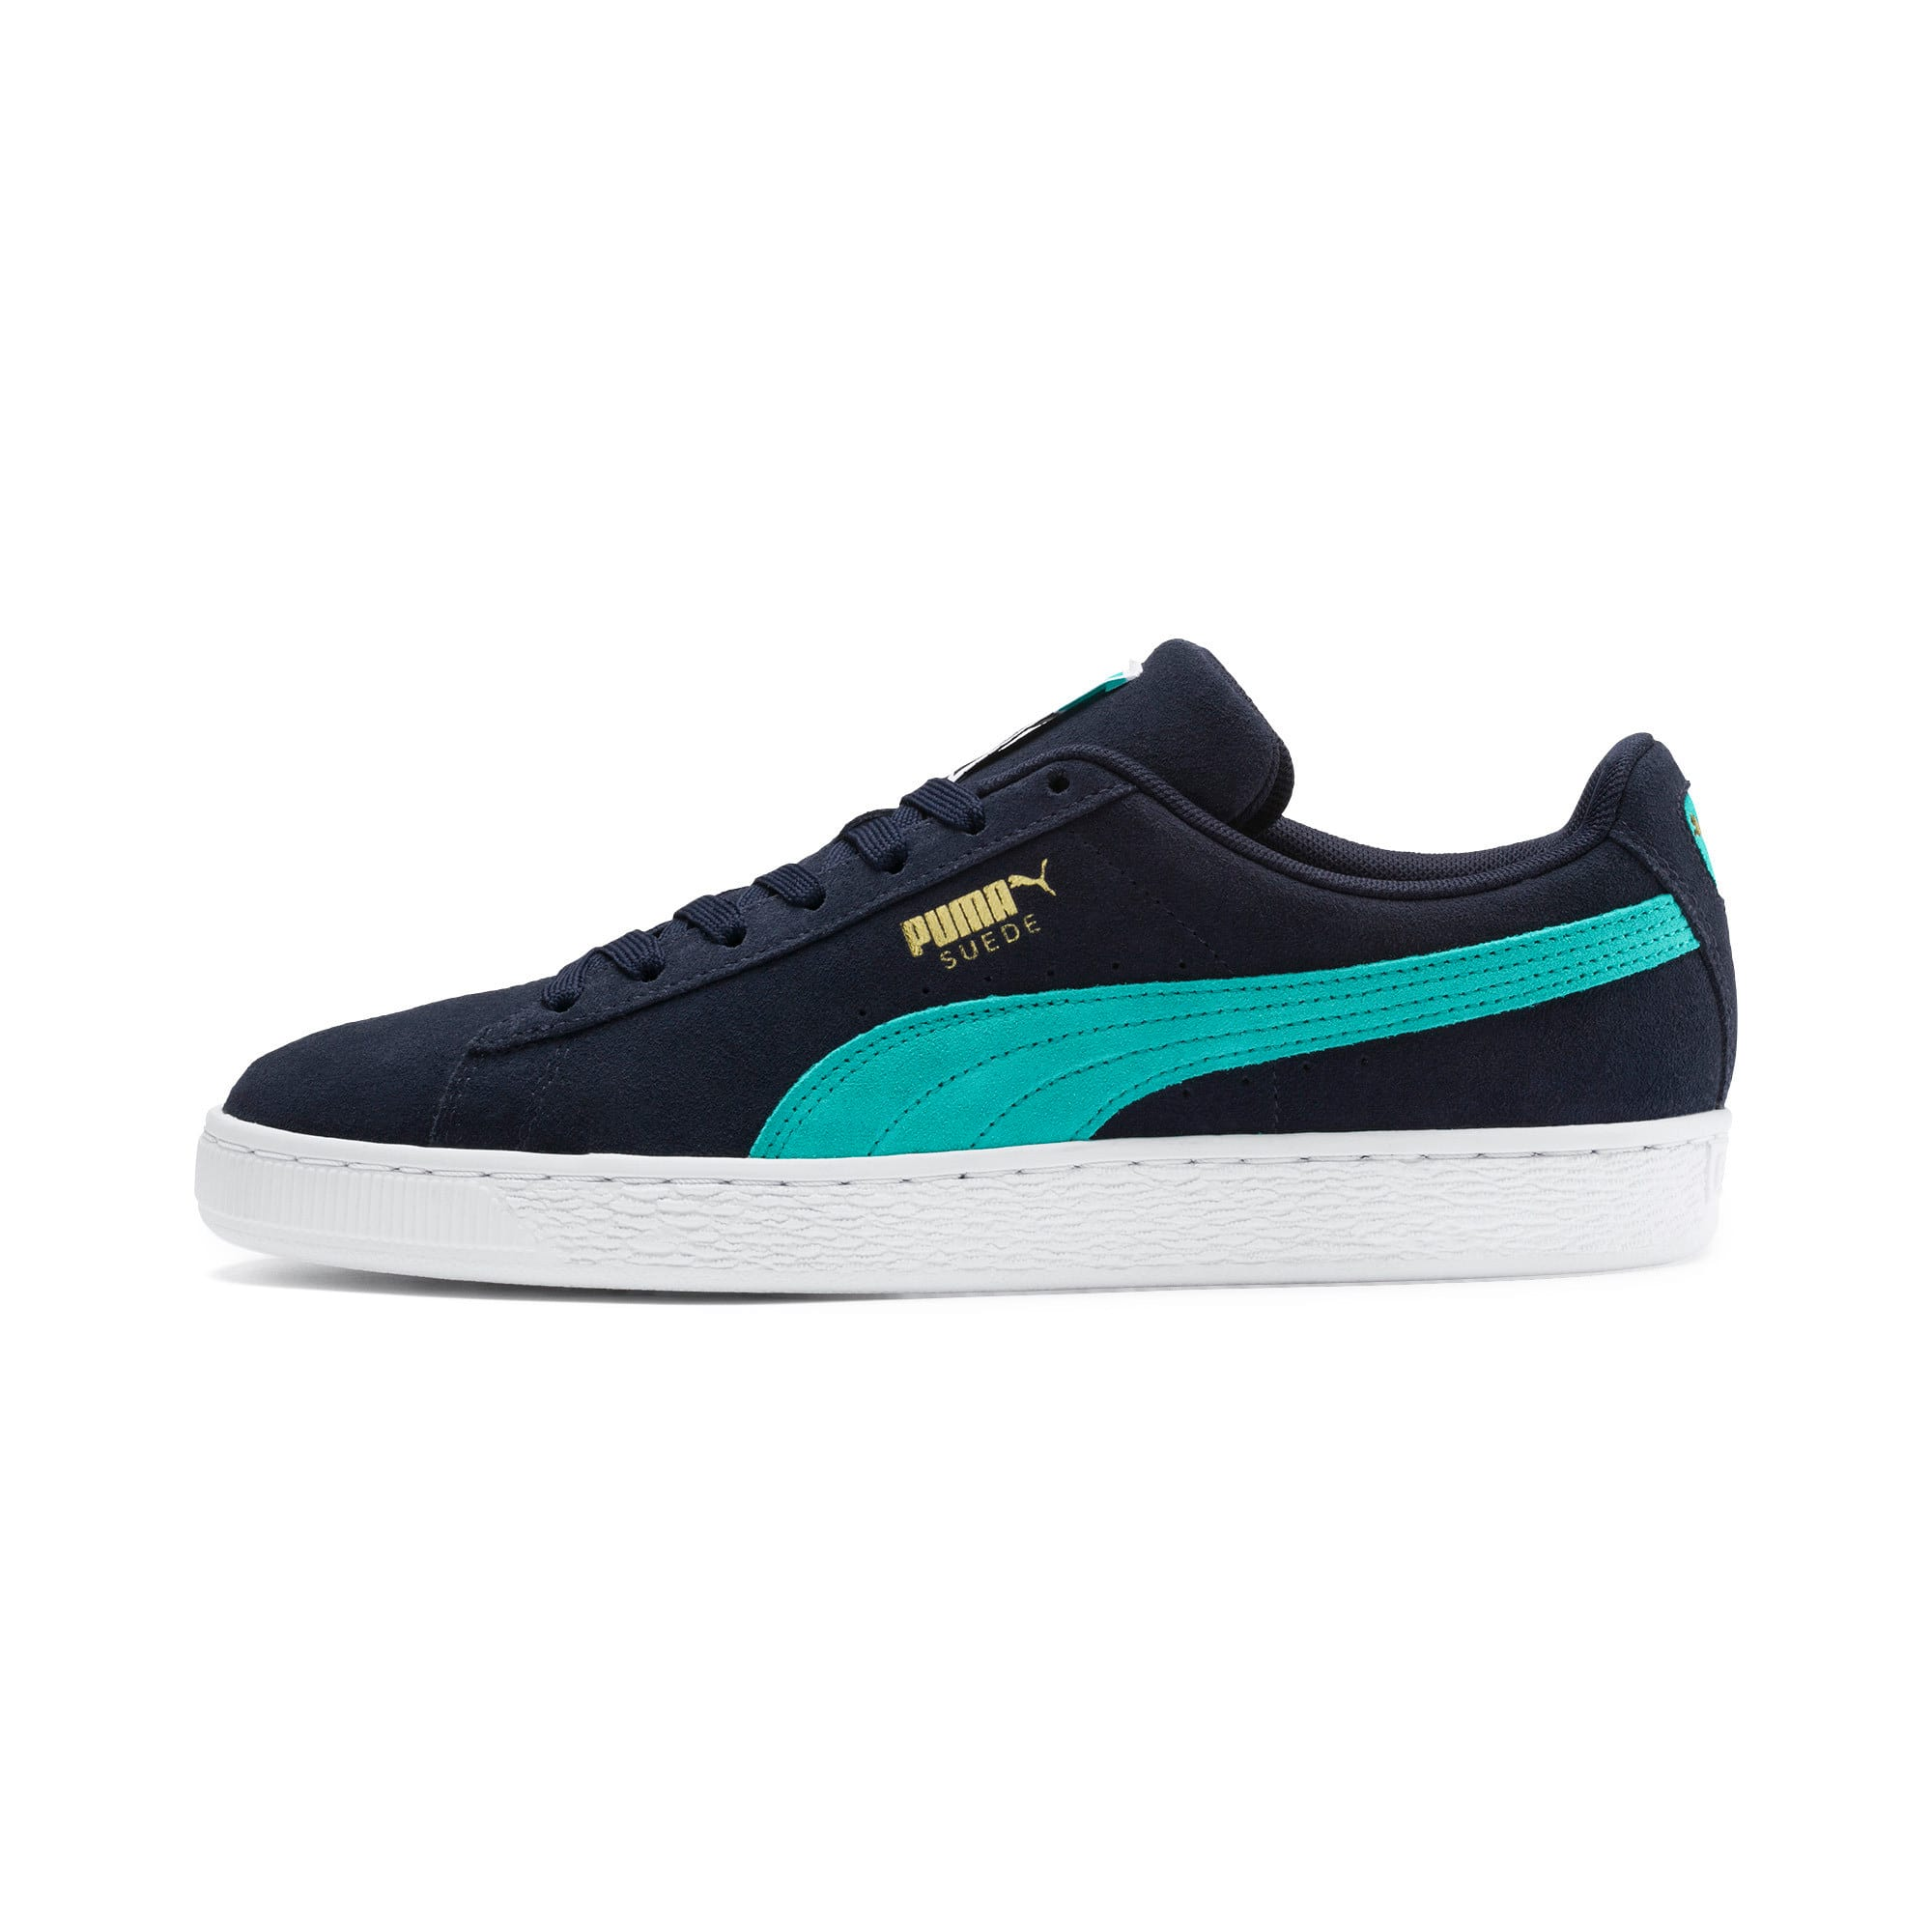 Thumbnail 1 of Suede Classic Trainers, Peacoat-Blue Turquoise-P Wht, medium